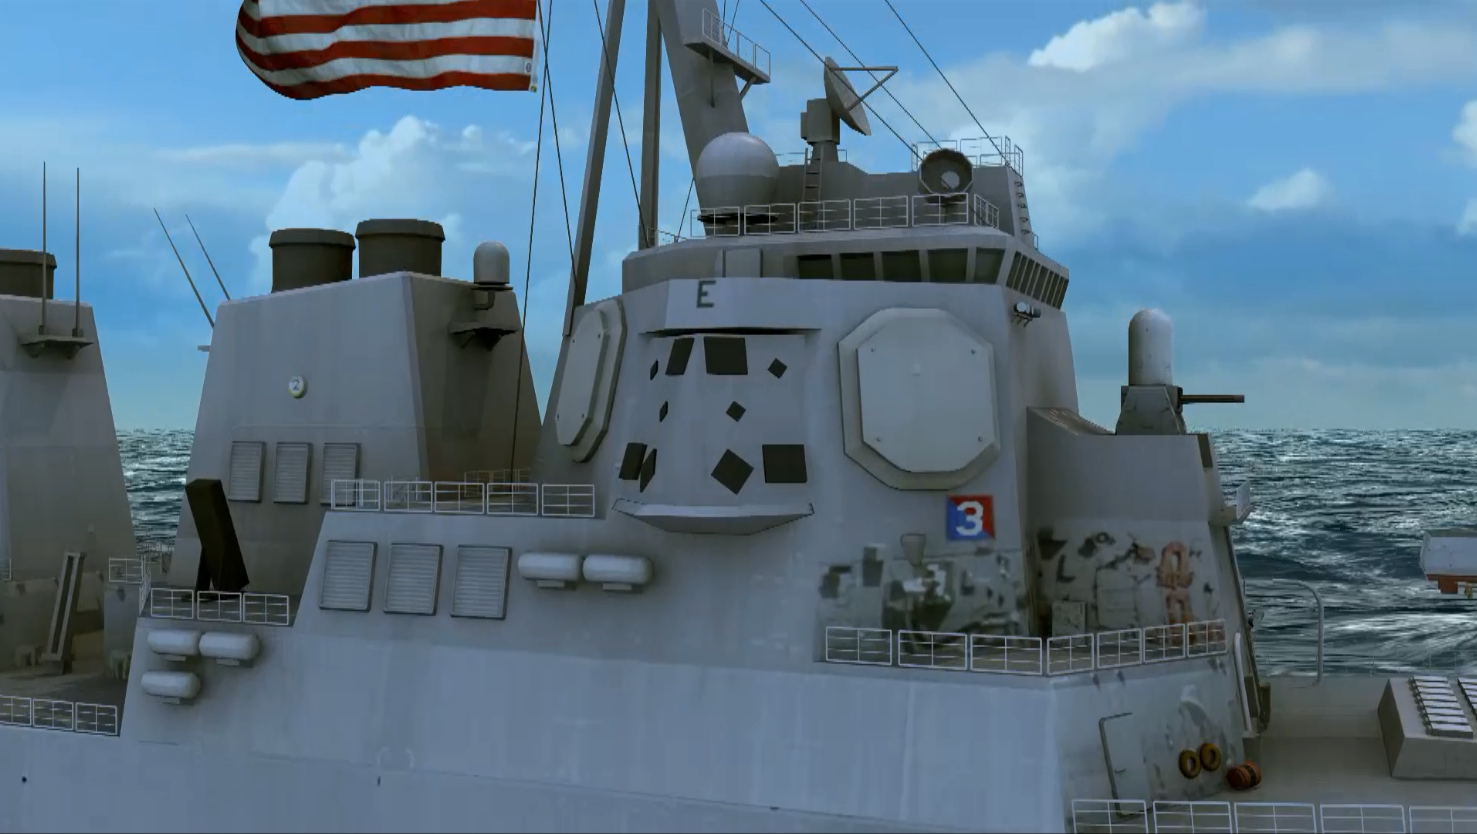 Northrop Grumman Awarded $27.6M Contract to Build First Two SEWIP Block III Ship Sets